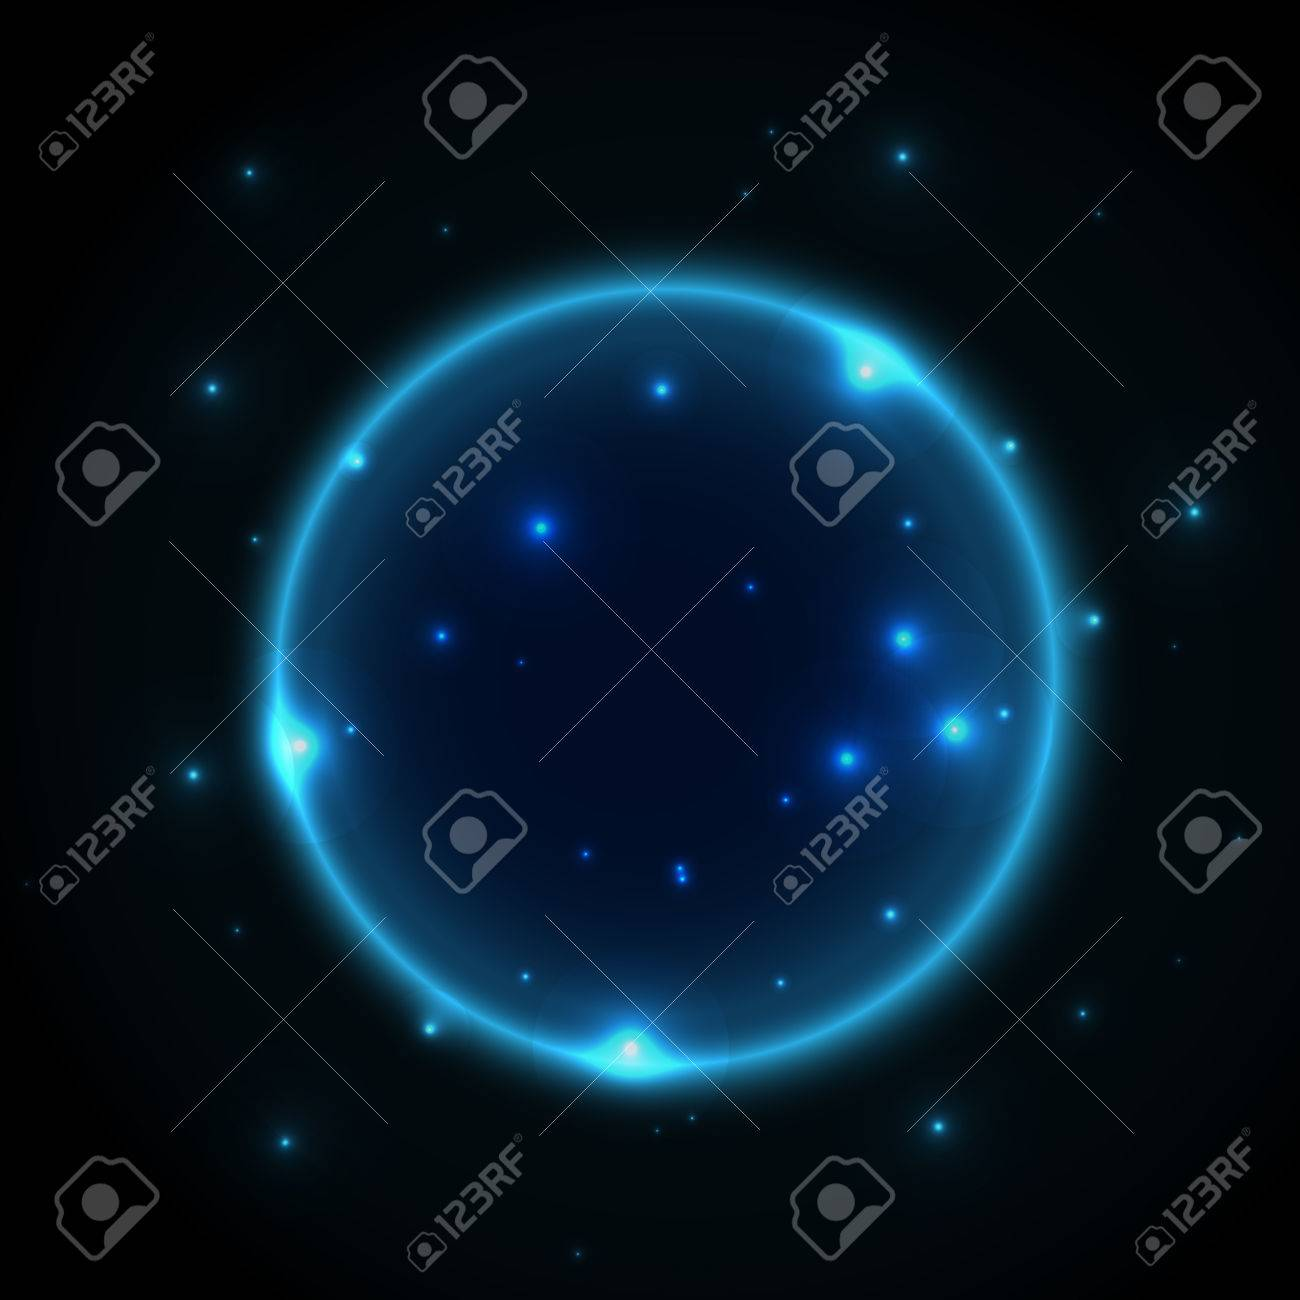 61926600 glowing universe planets space vector background with sparkling stars and lines abstract galaxy wall